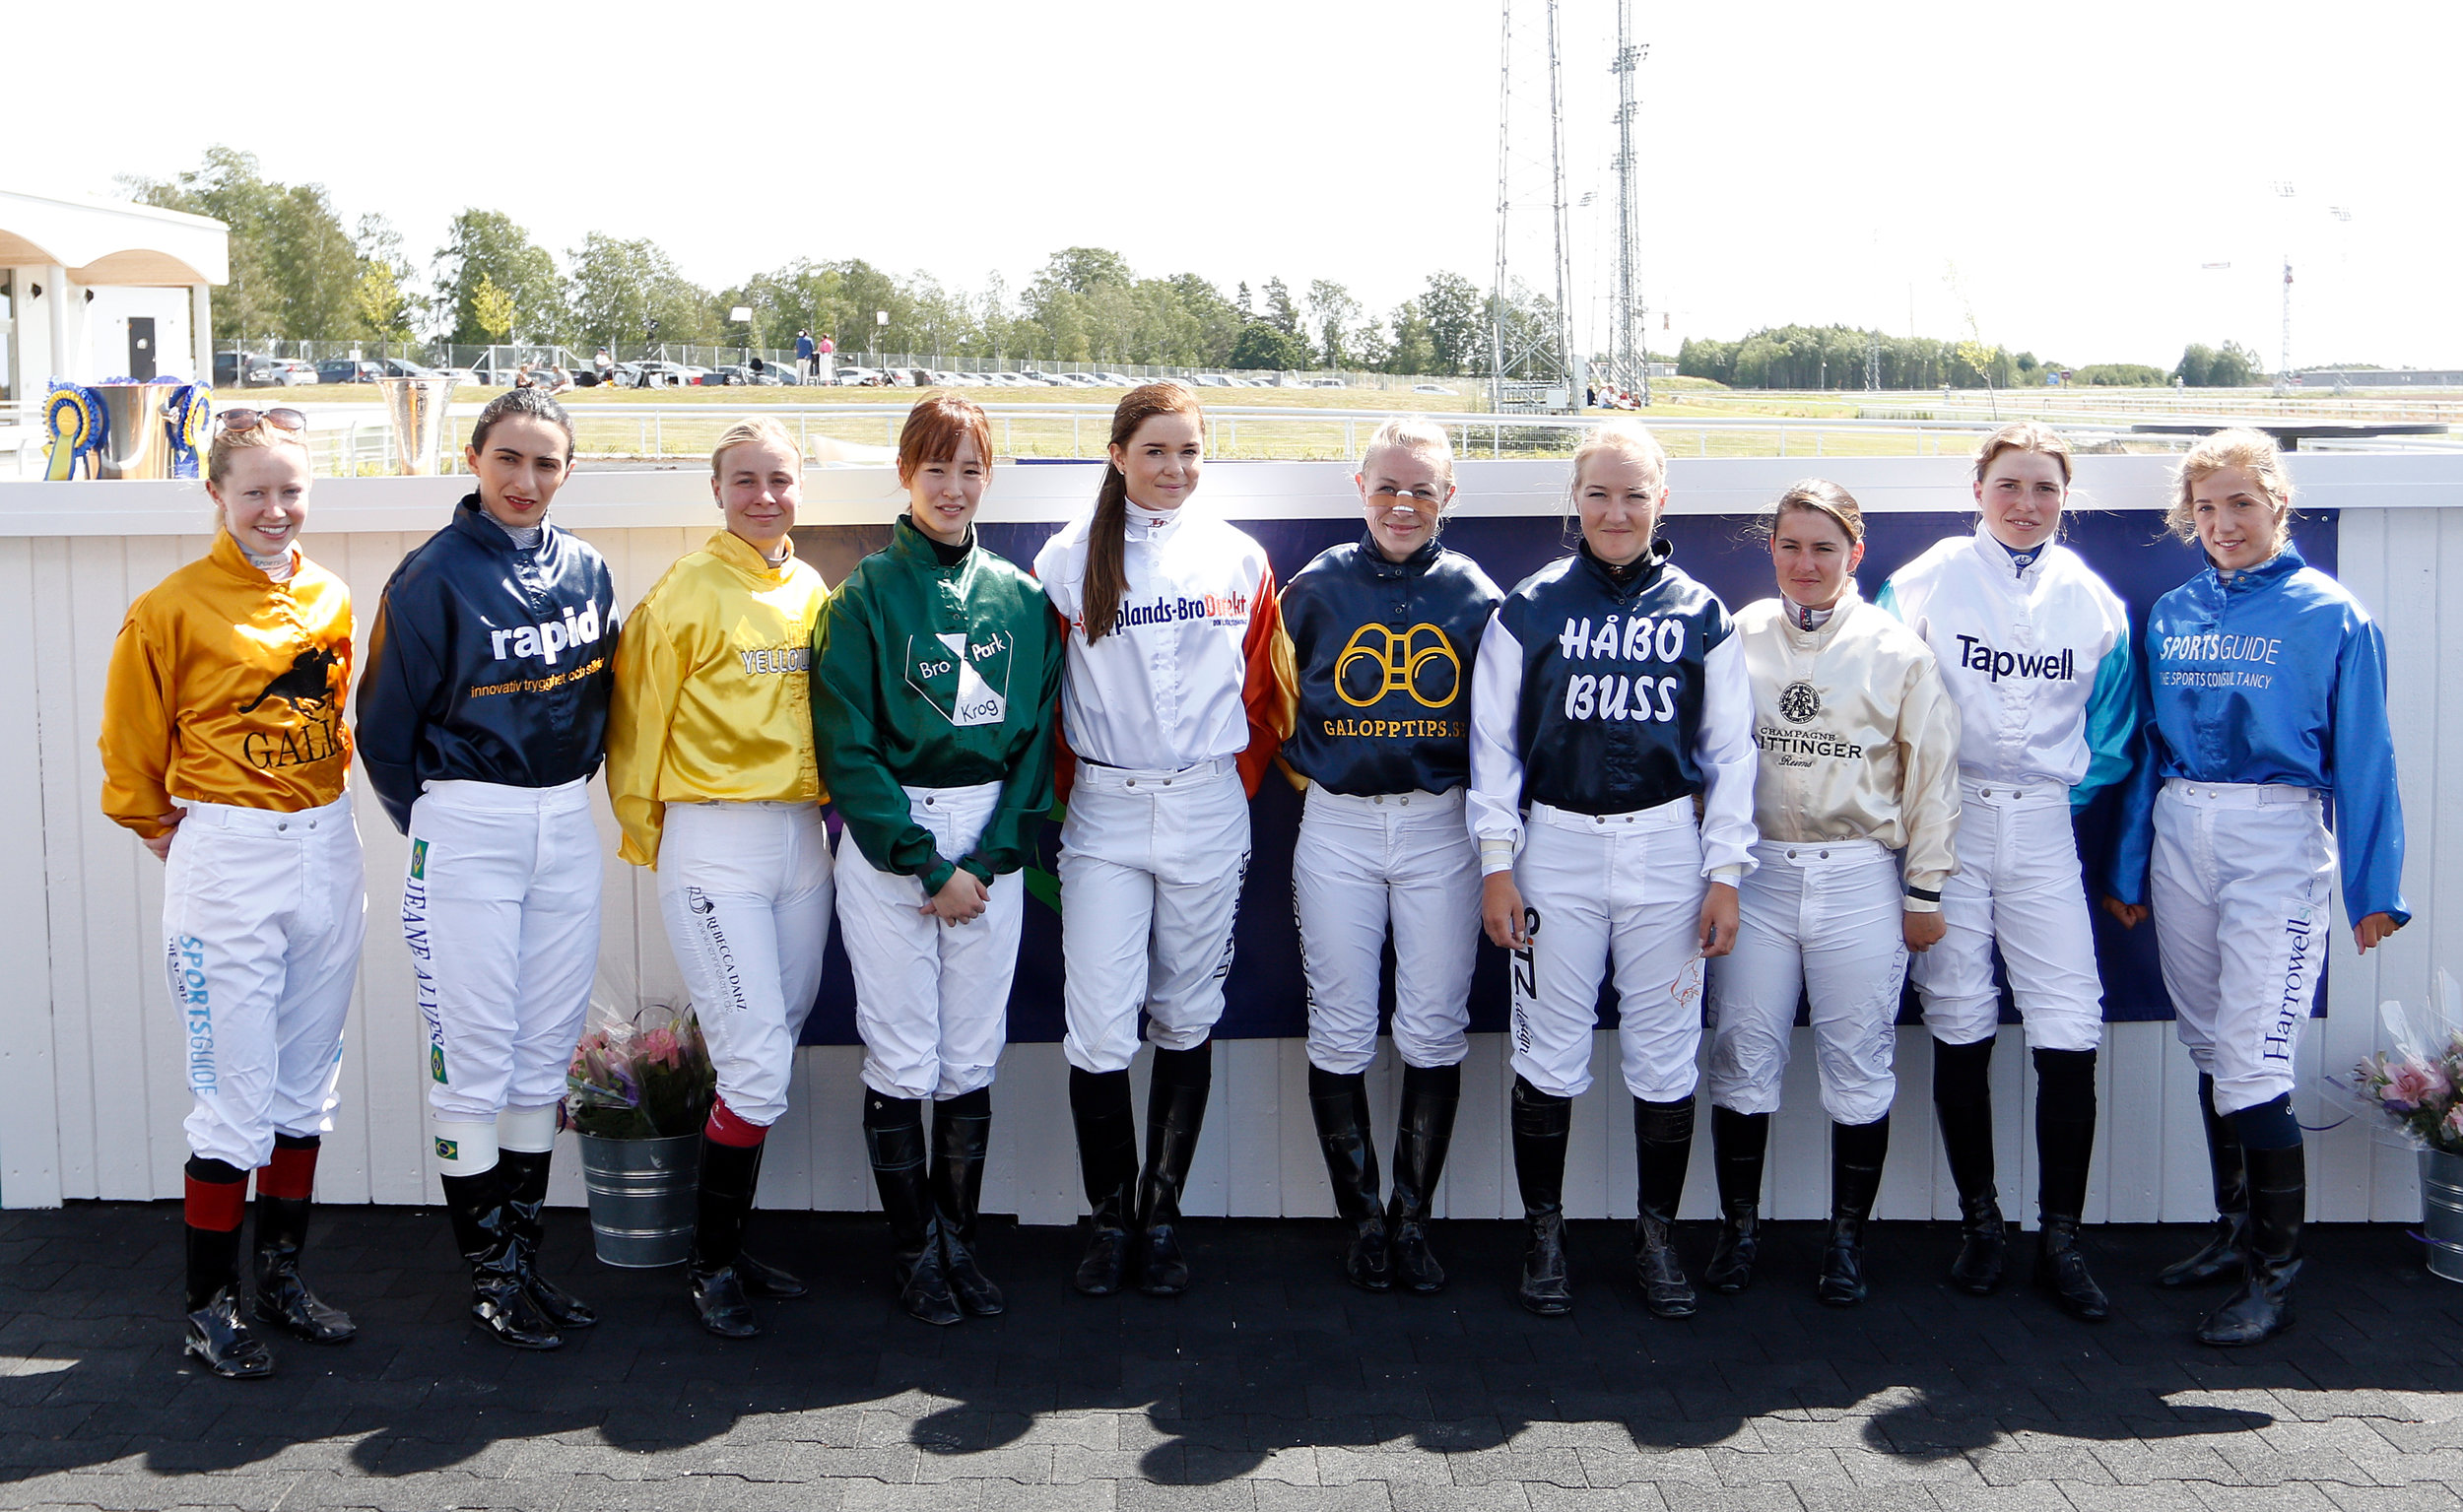 The participating jockeys in the 2019 Women Jockeys' World Cup at Bro Park in Stockholm, Sweden.